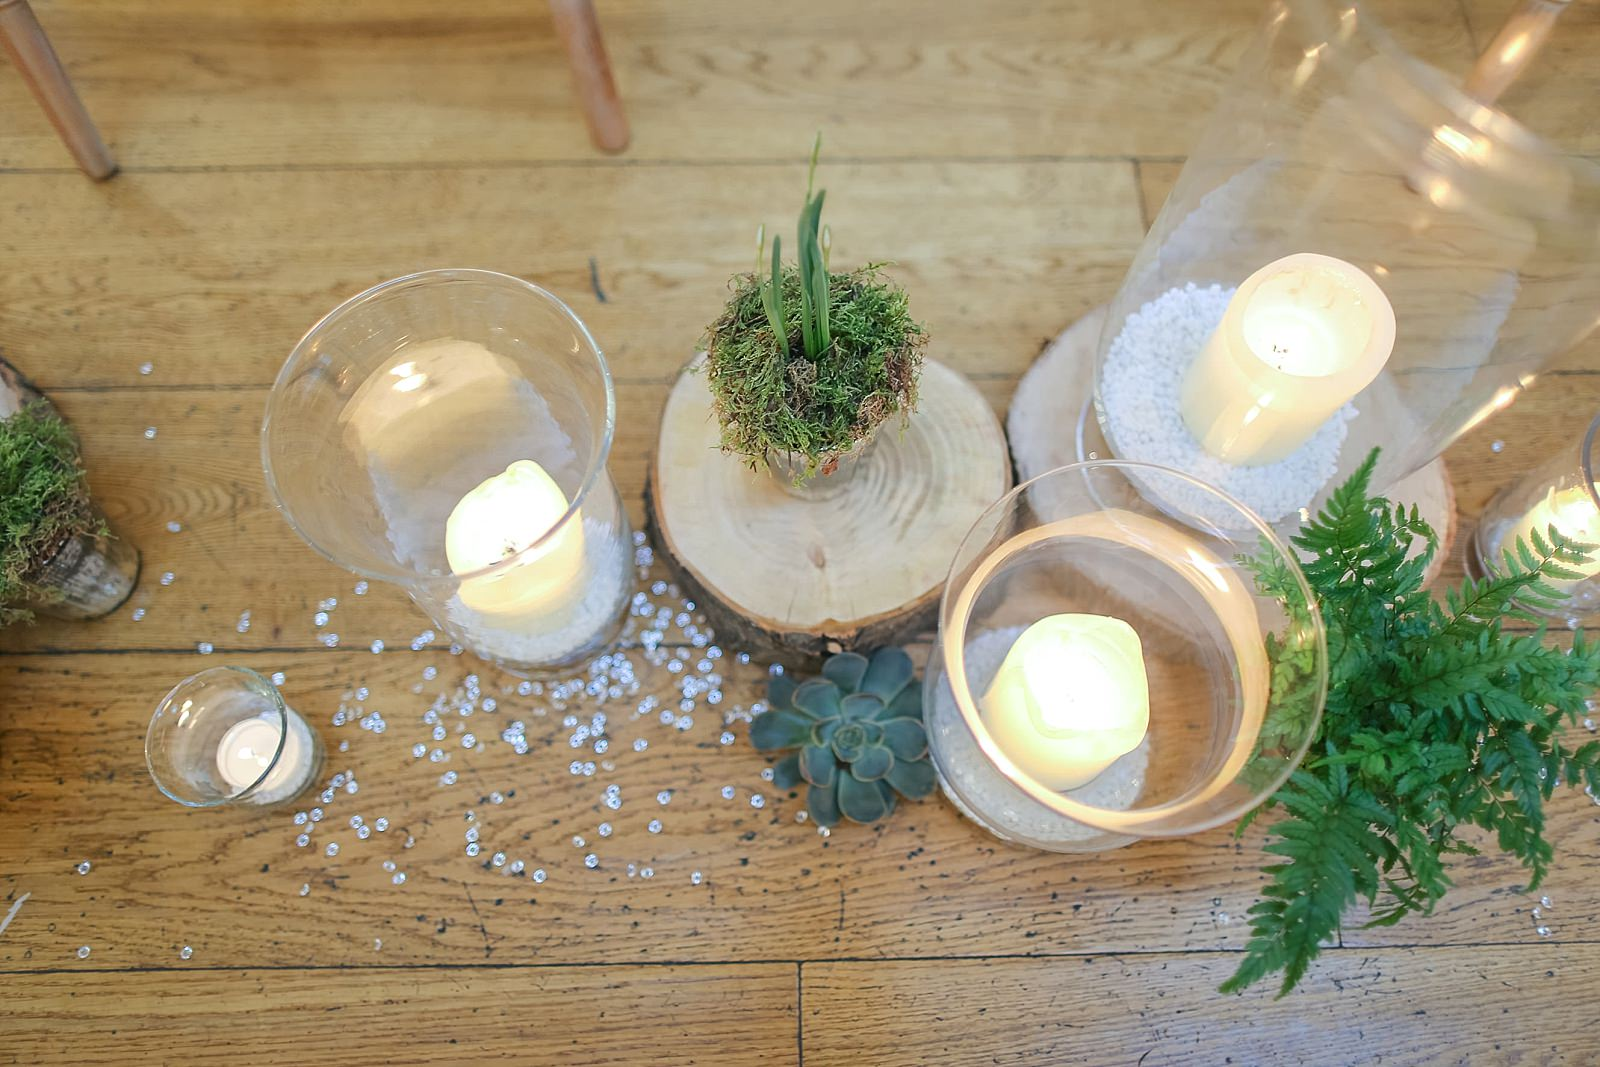 aisle details of logs plants and candles in jars